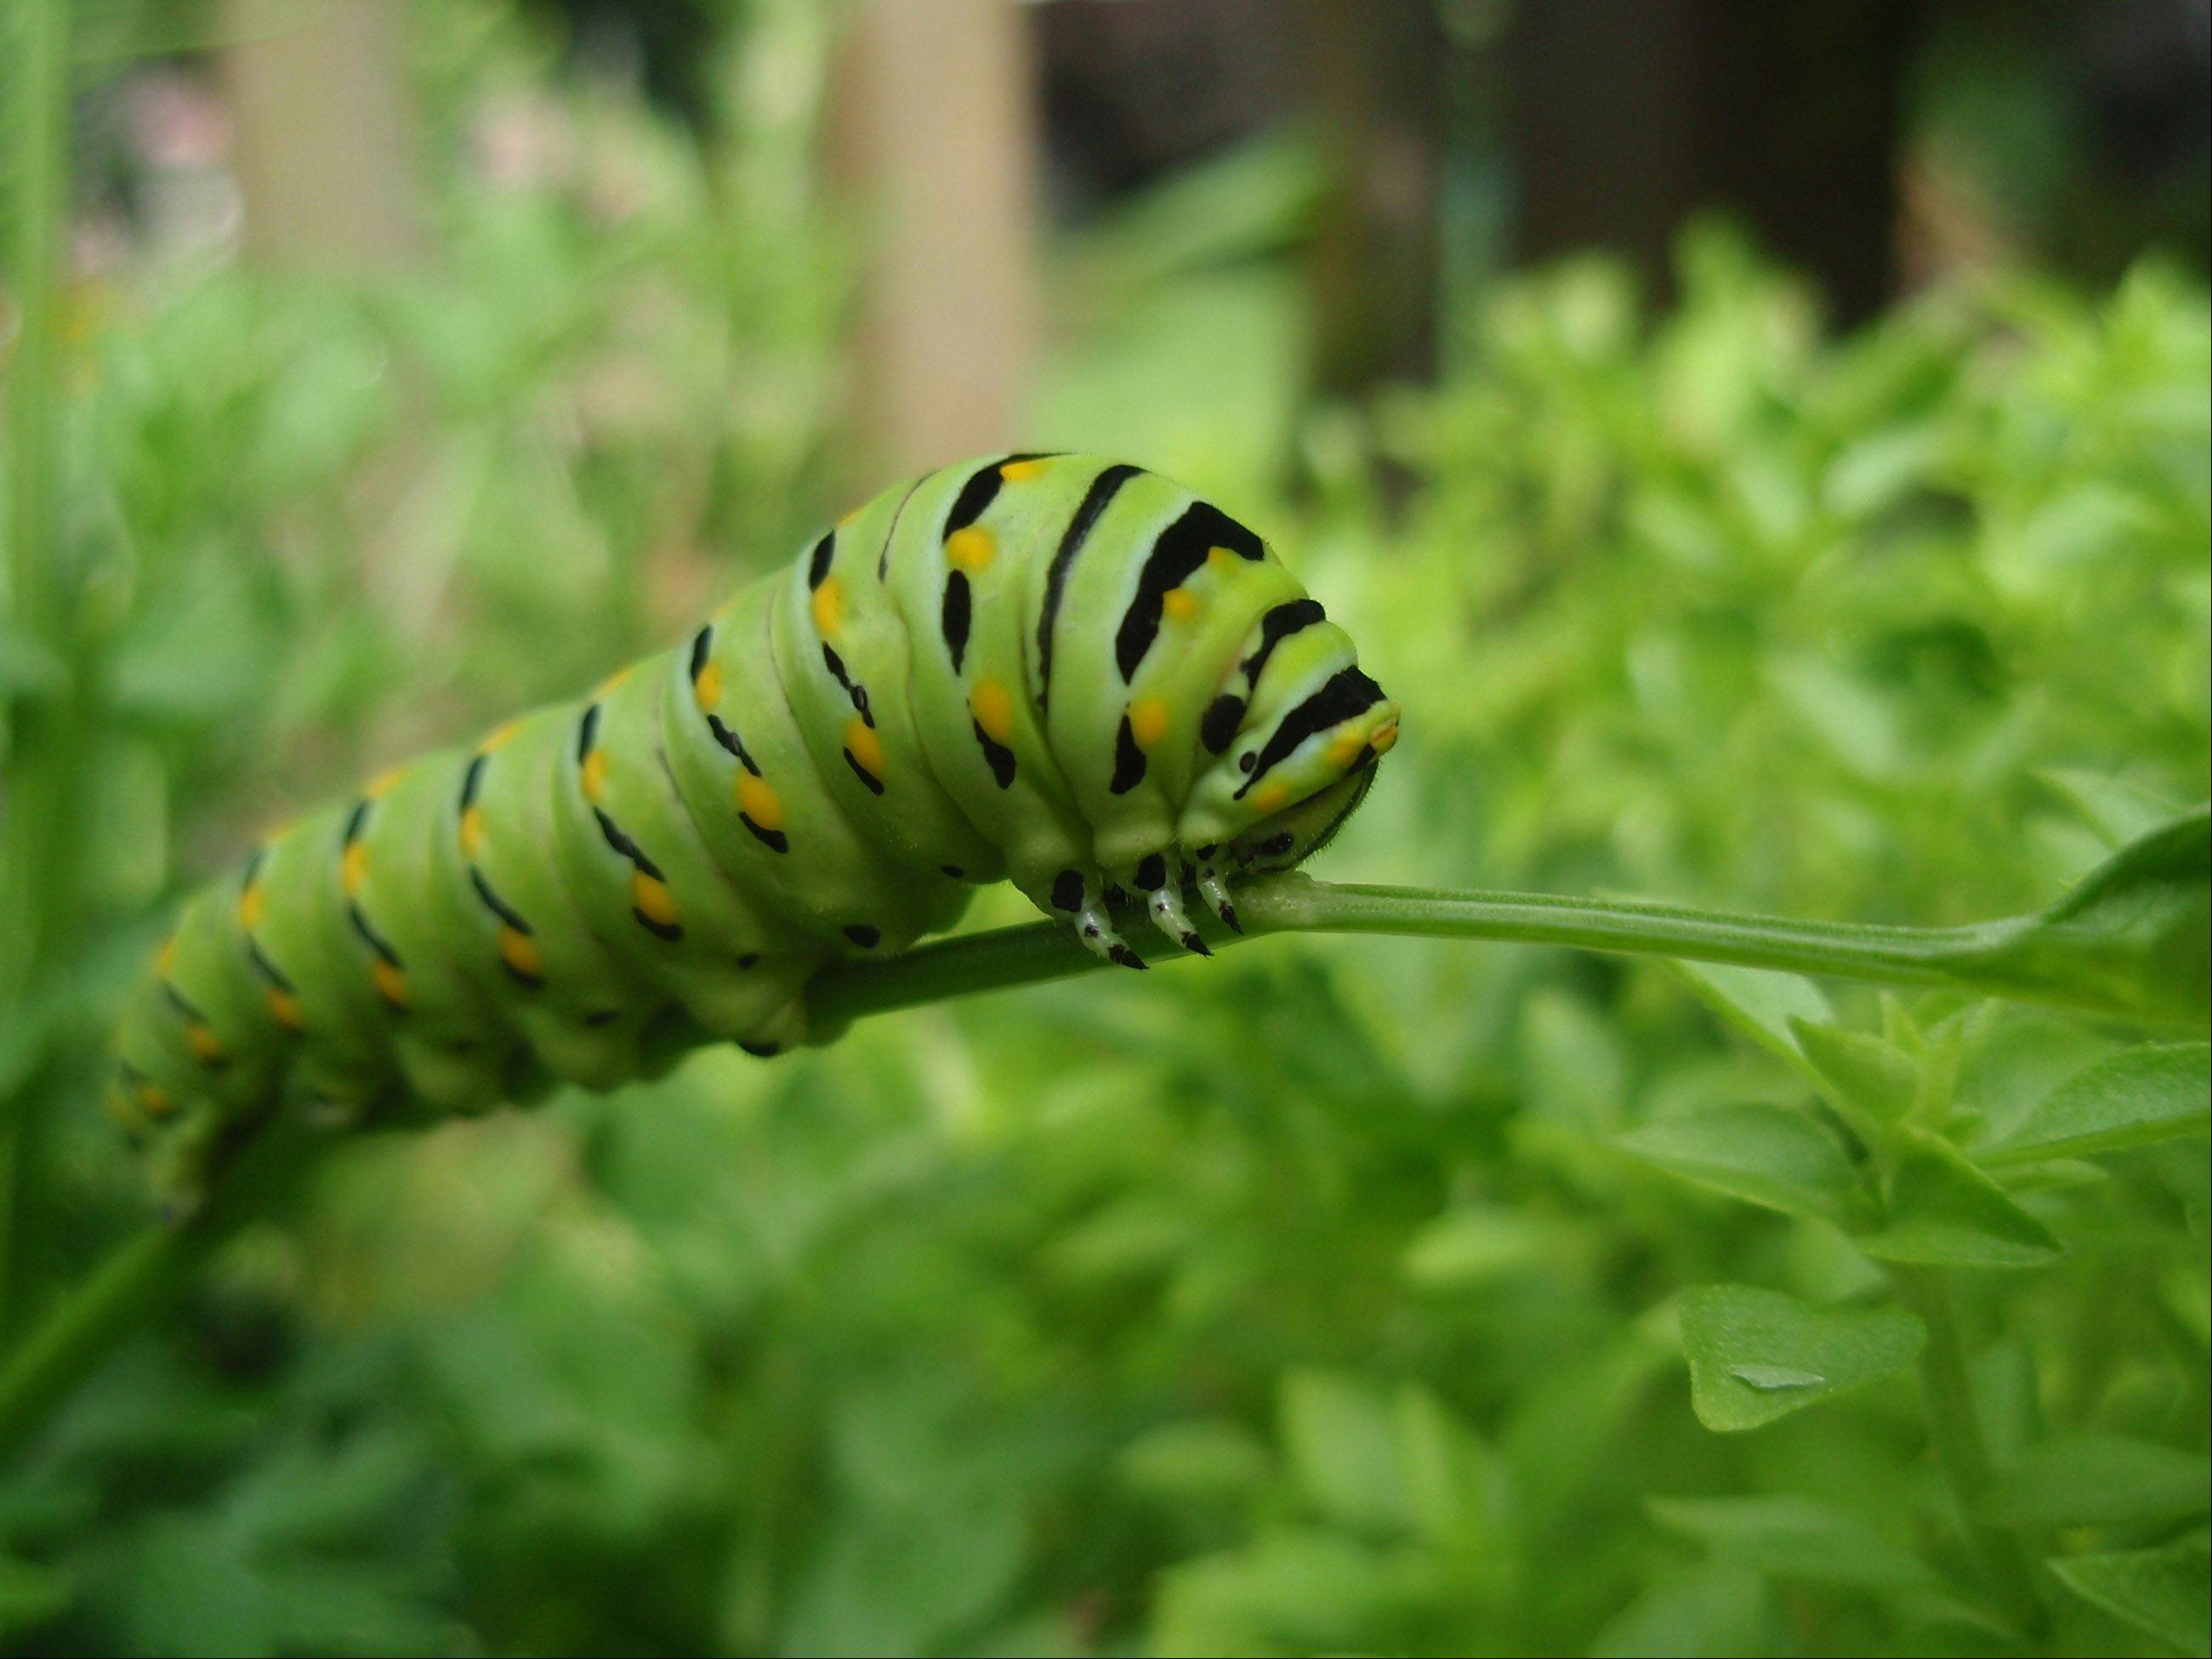 I took this photo last summer in my back yard. This caterpillar was enjoying helping itself to my basil plant. Reminds me a little of Alice in Wonderland.